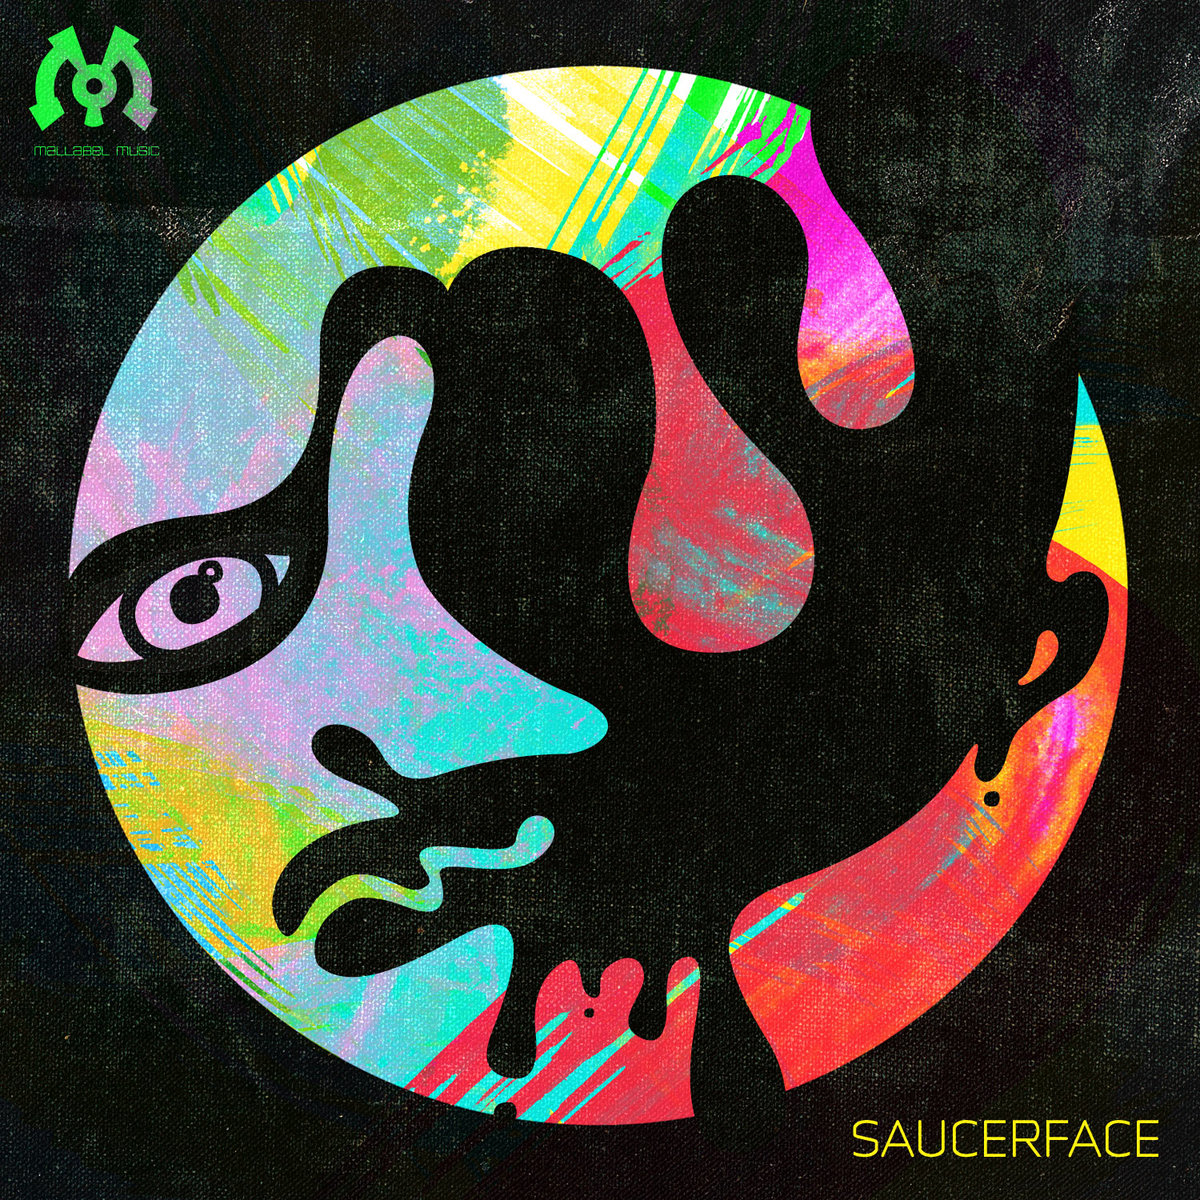 6Blocc - Kultcha @ 'Various Artists - Saucerface' album (electronic, dubstep)